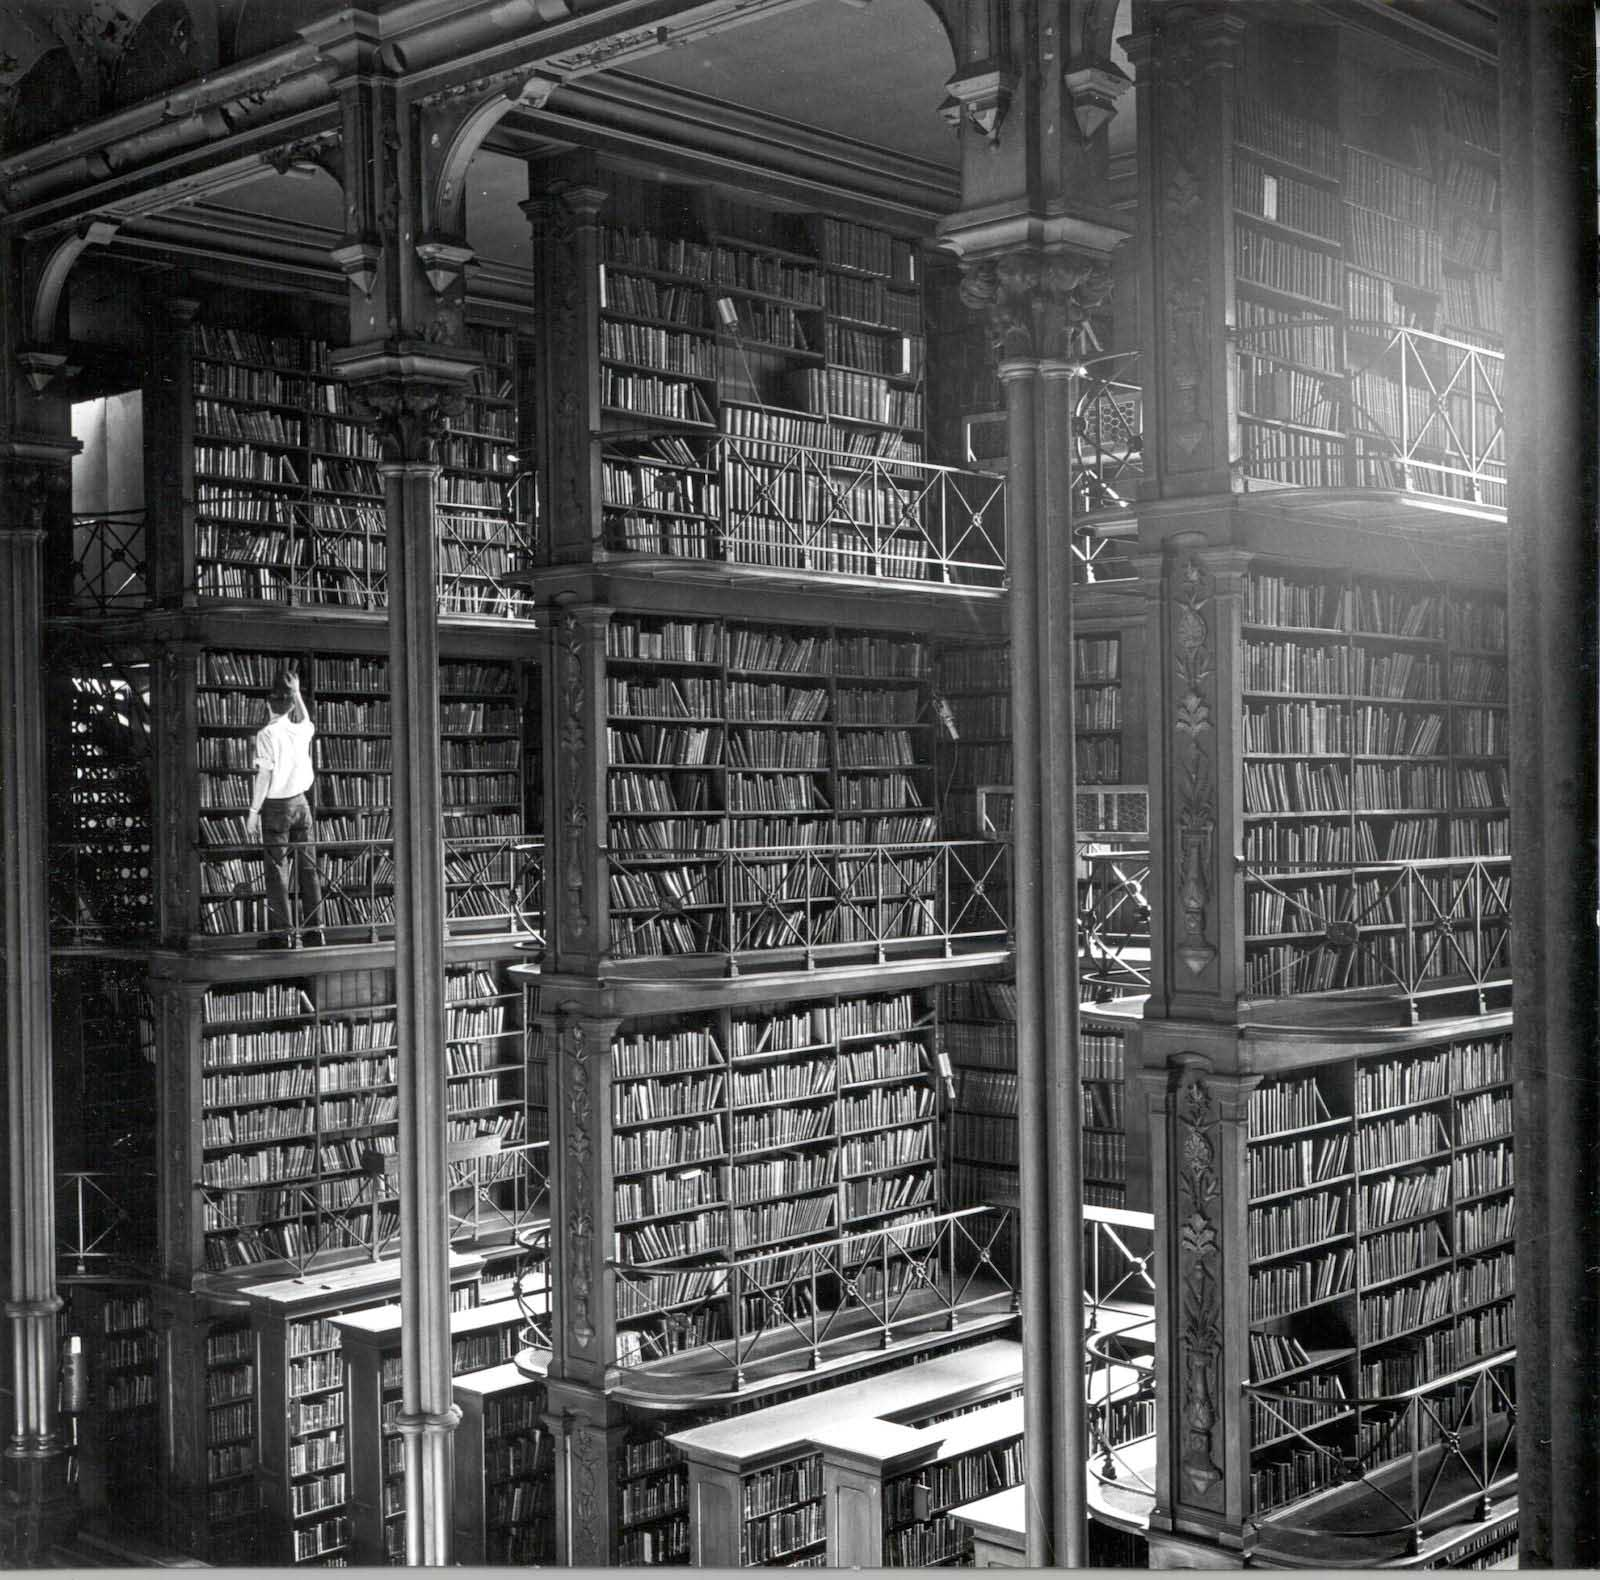 old_cincinnati_library%2B%25281%2529.jpg